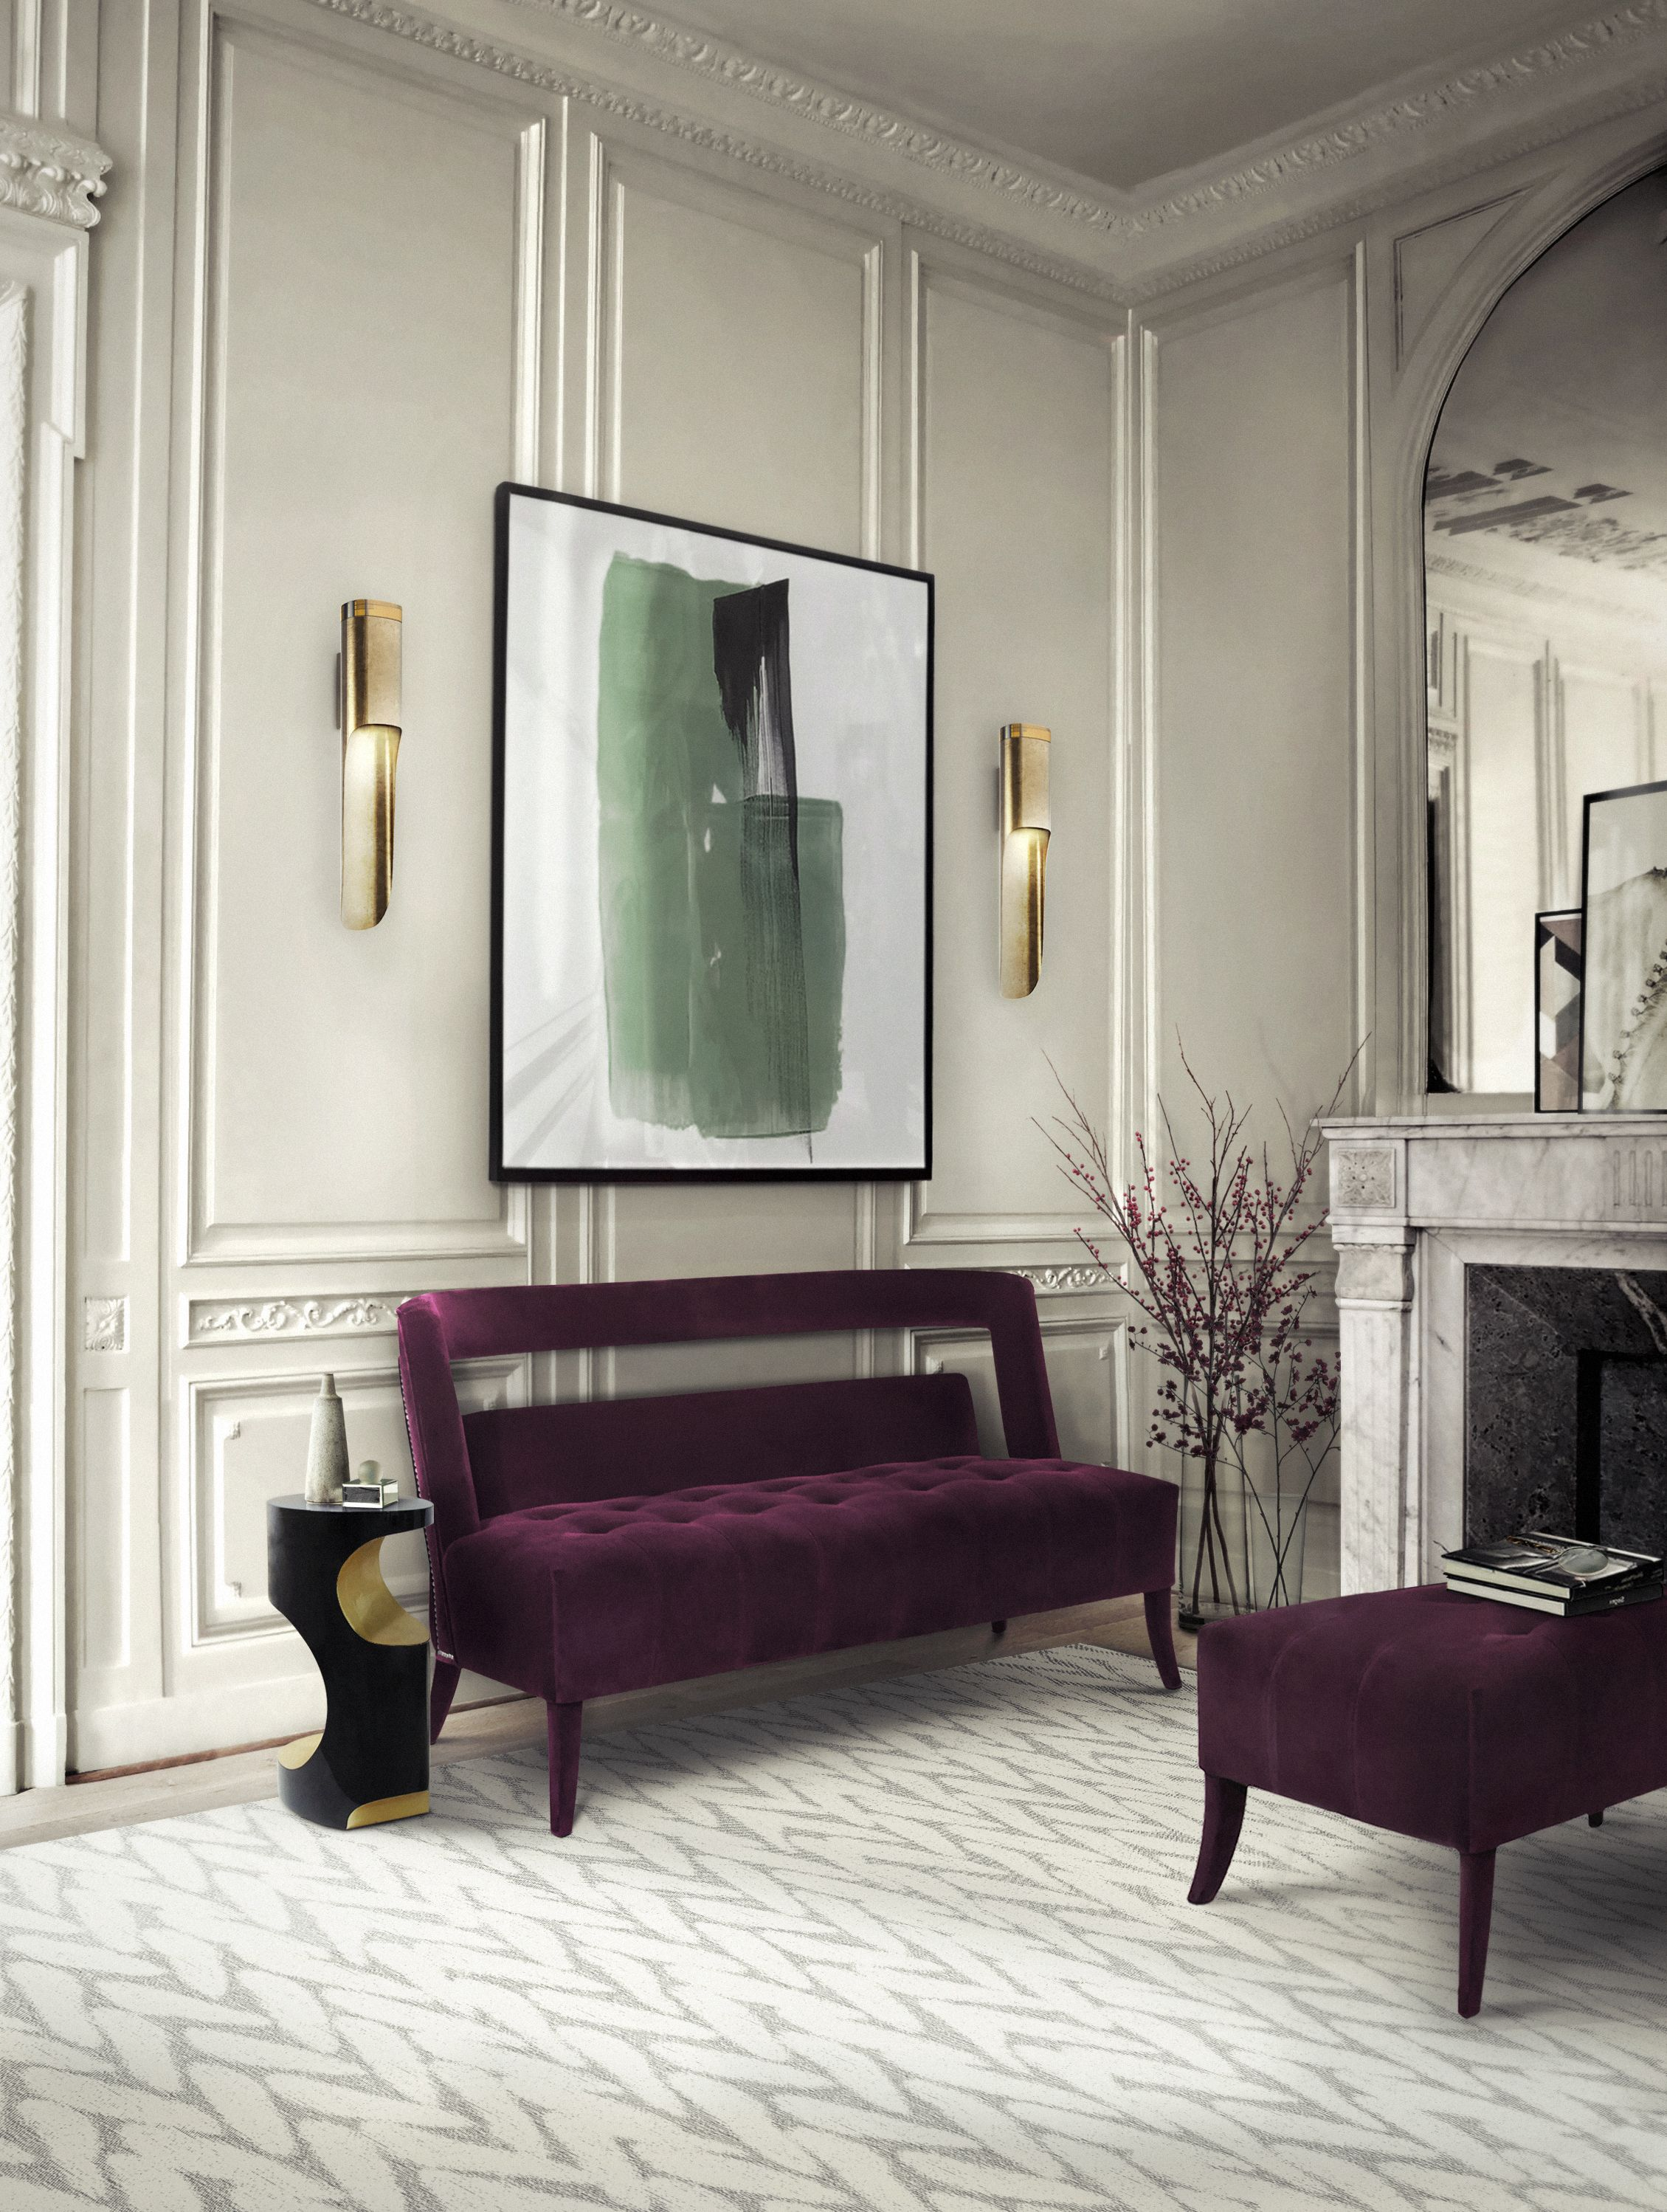 The Trendiest Sofas To Have In Your Living Room Decor Living Room Inspiration Classic Interior Luxury Furniture